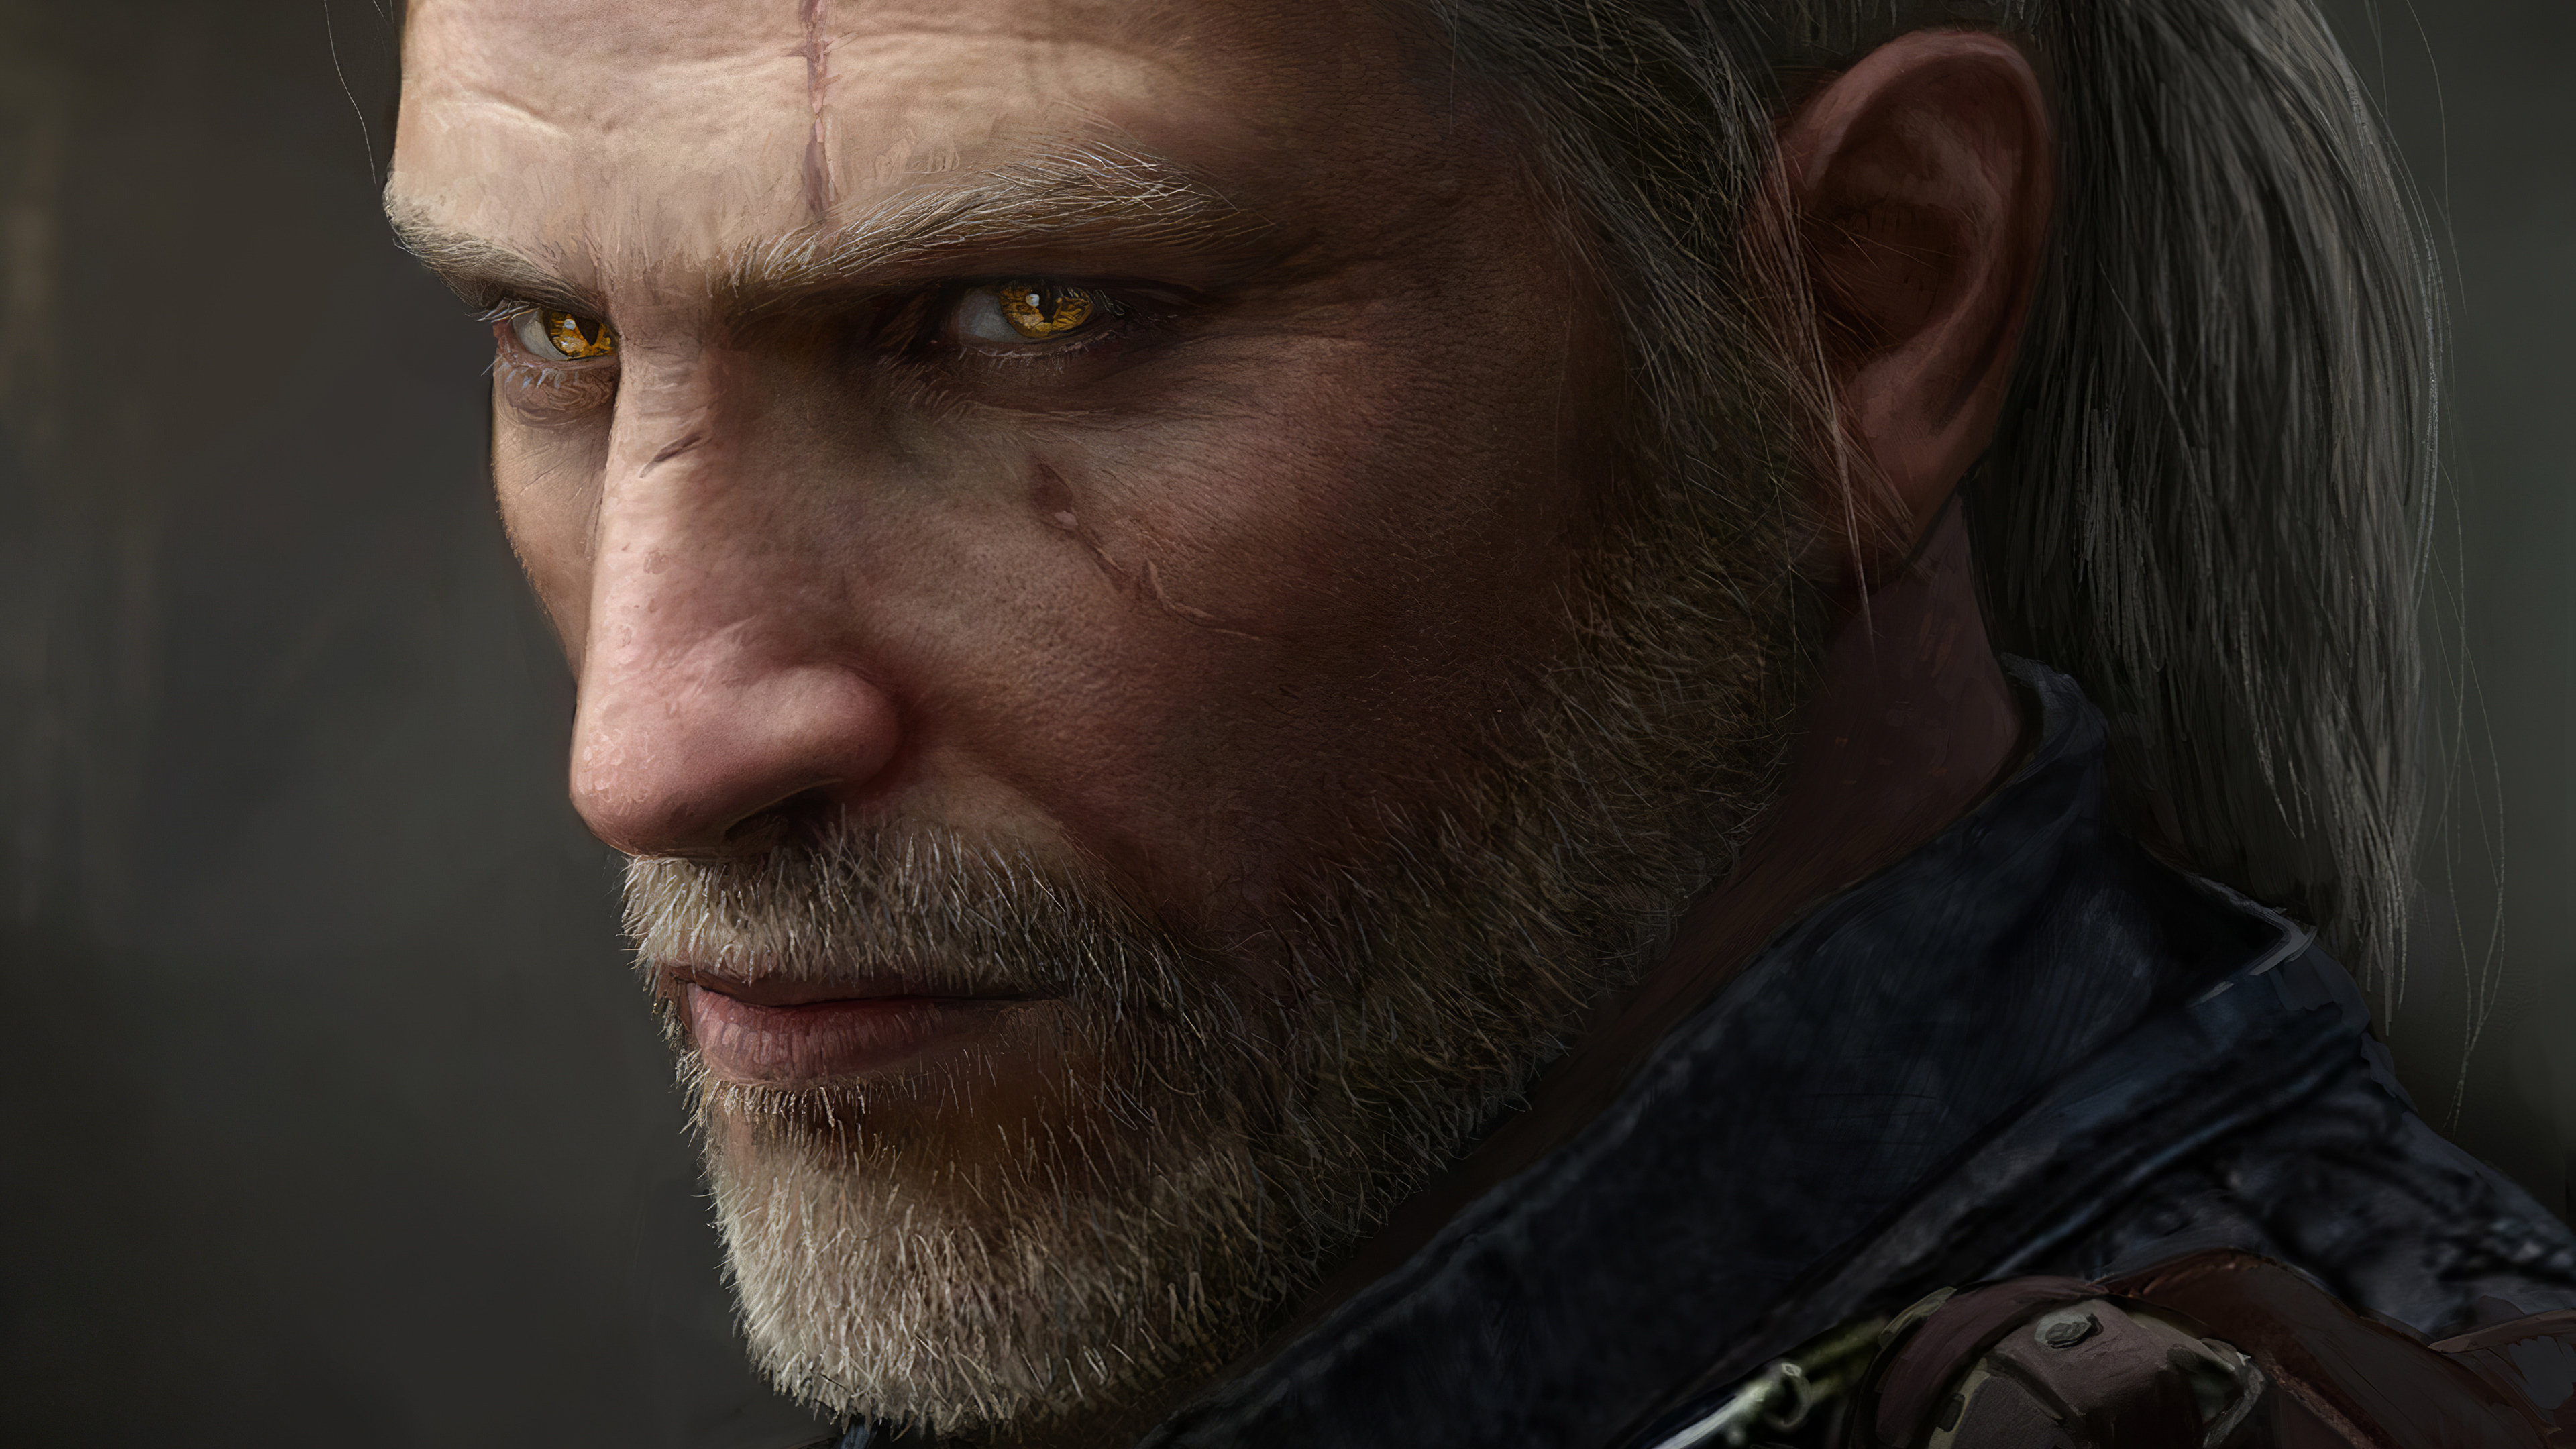 witcher 3 geralt of rivia glowing eyes 1578854177 - Witcher 3: Geralt Of Rivia Glowing Eyes - Geralt Of Rivia Witcher 3 Glowing Eyes 4k wallpaper, Geralt Of Rivia Glowing Eyes 4k wallpaper